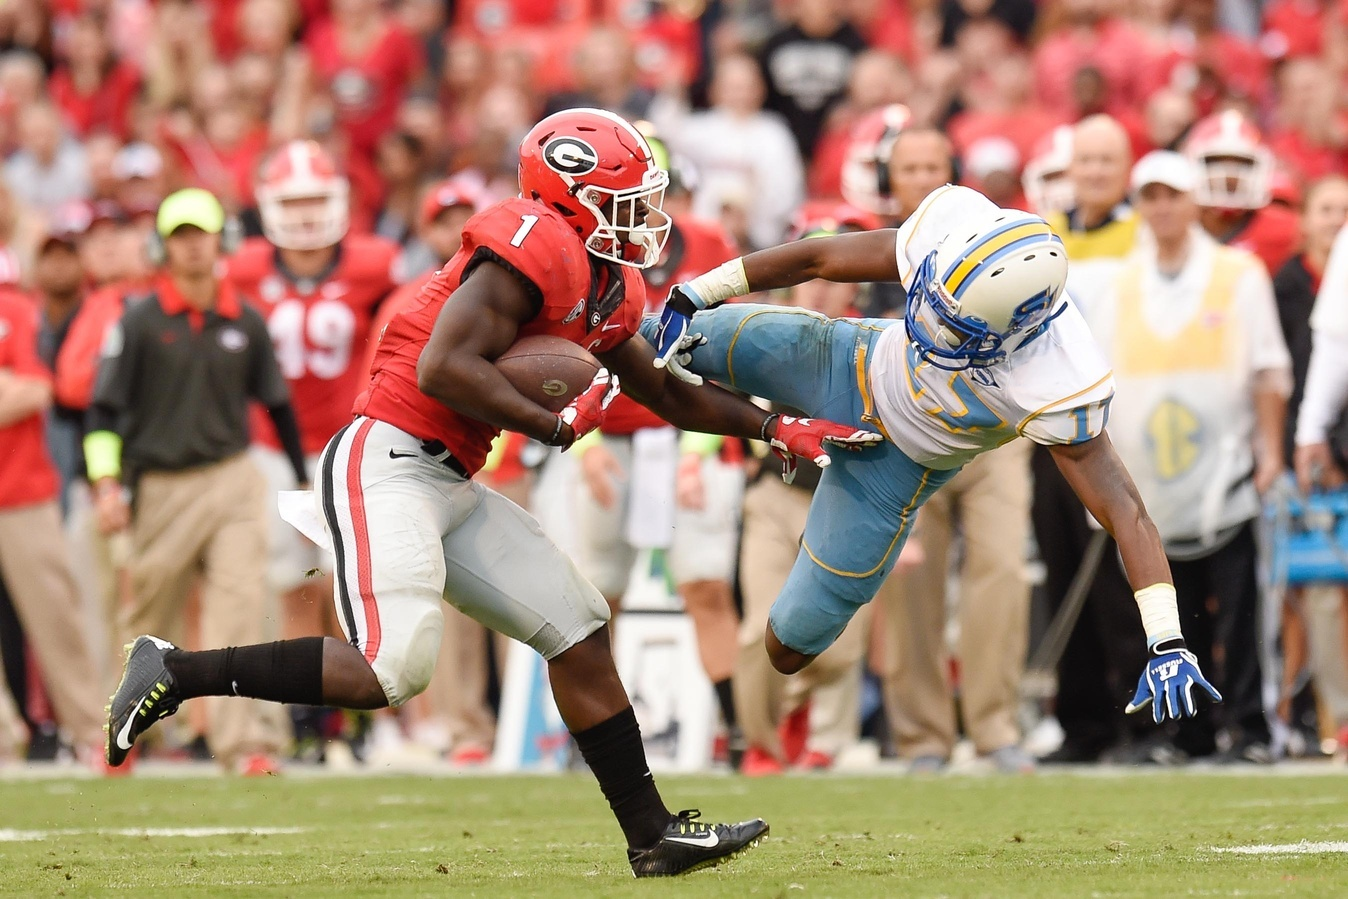 Southern University S Football Team In White Lost At Georgia 48 6 2017 Photo By Dale Zanine Usa Today Sports